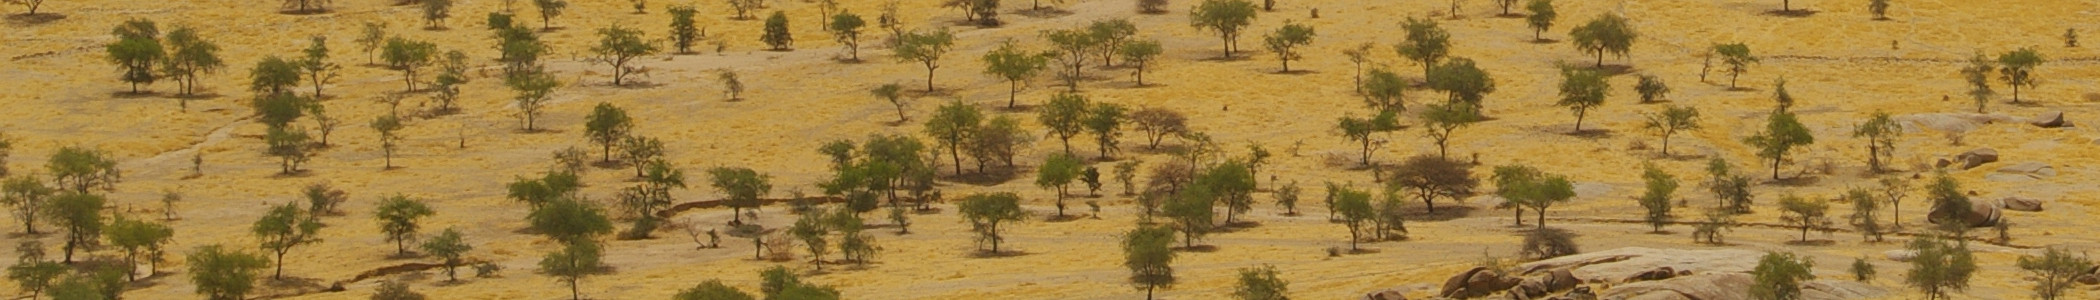 Sahel Climate And Natural Resources